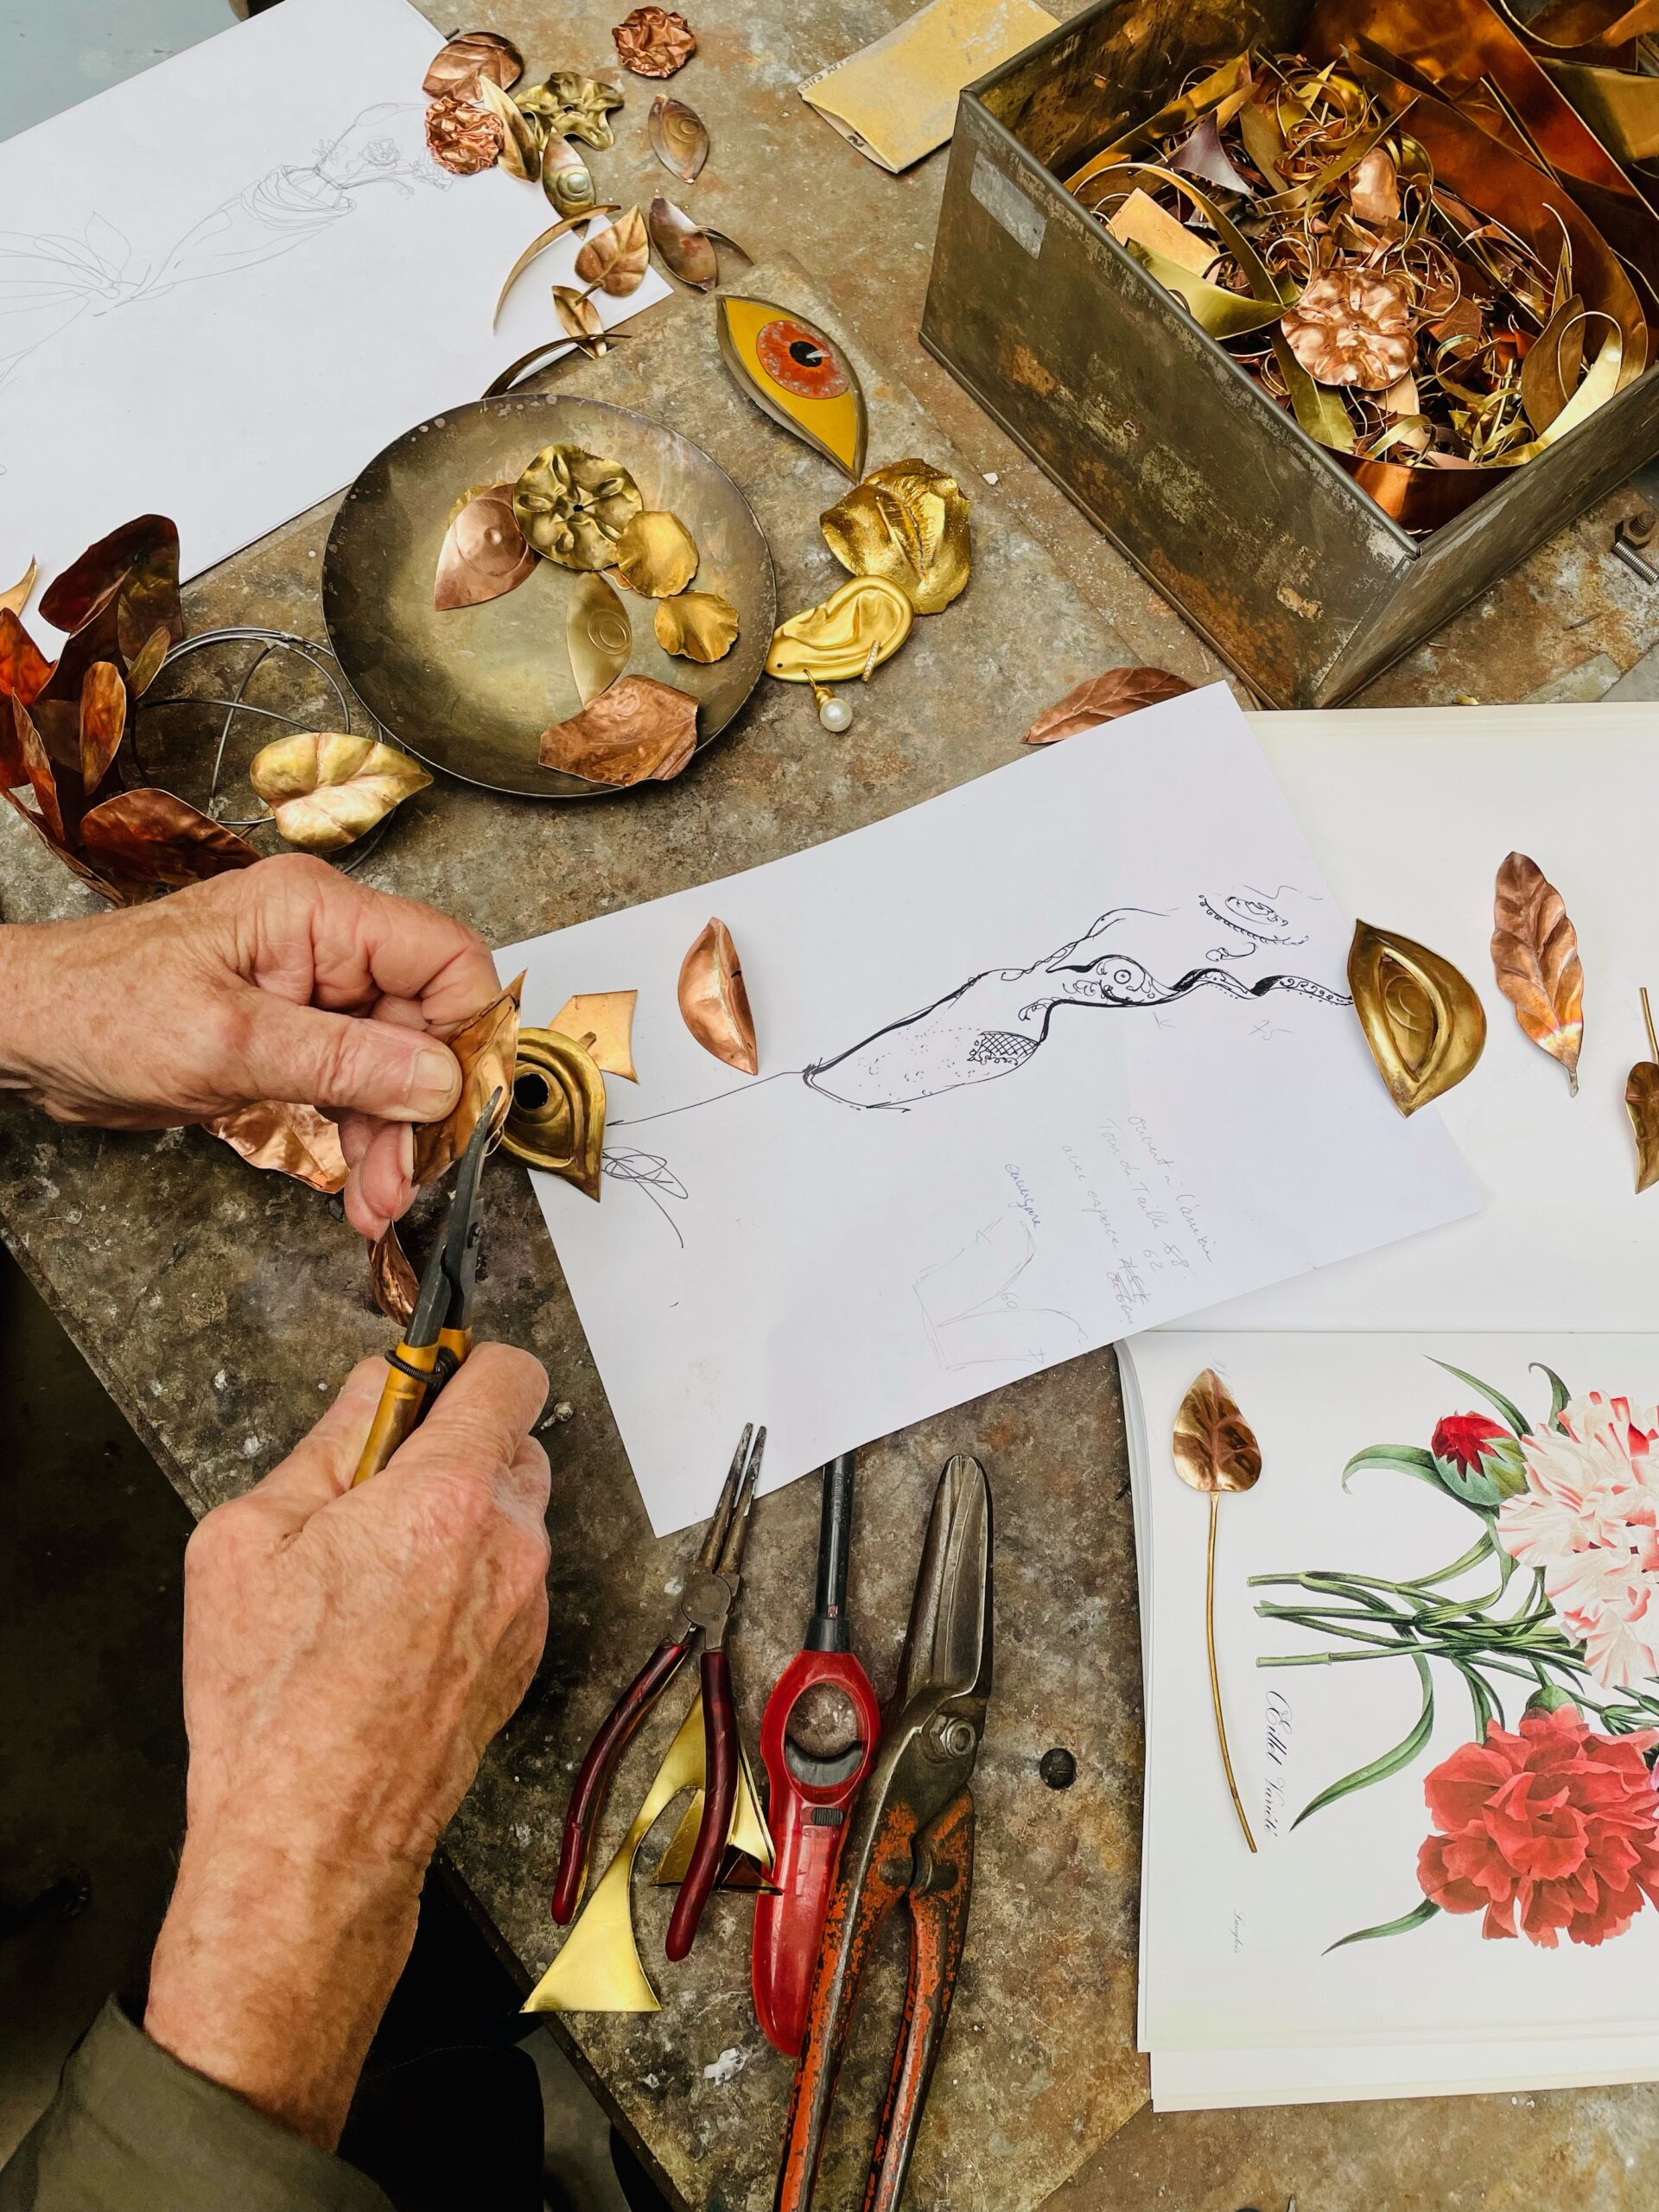 Hands of Michel Carel, who crafts jewelry for Schiaparelli